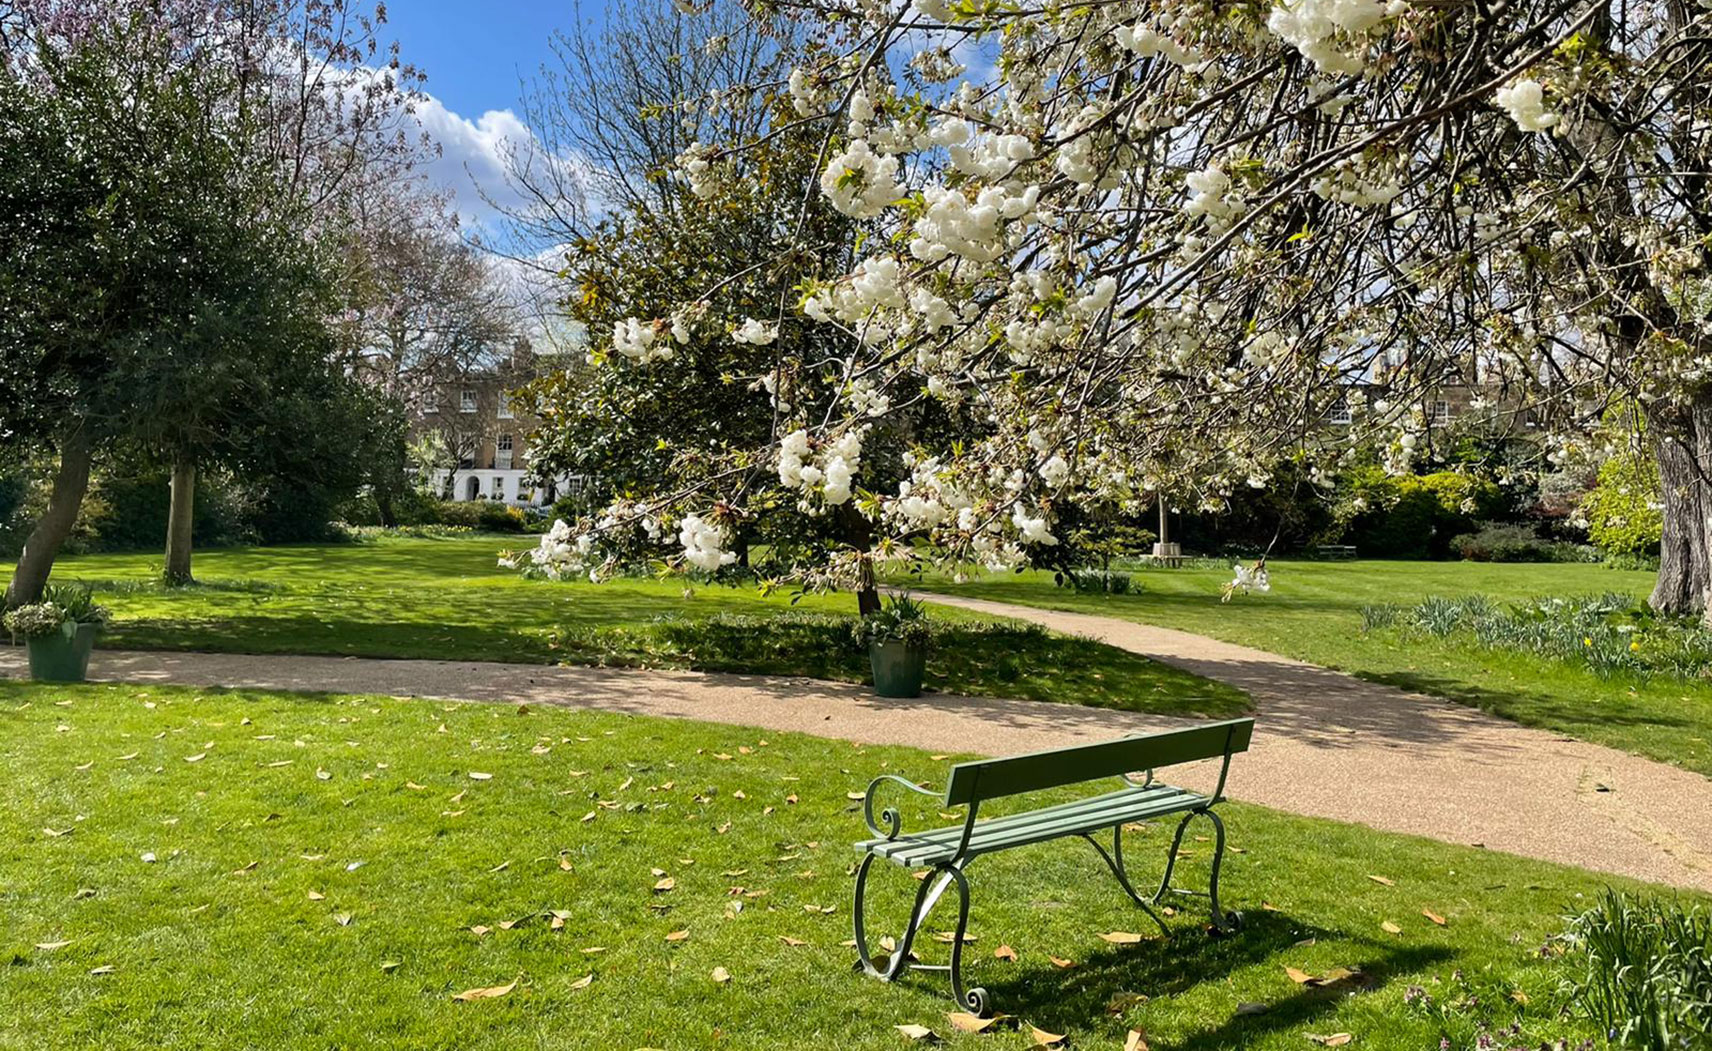 A dark green bench facing towards a patch of grass and a white blossom tree